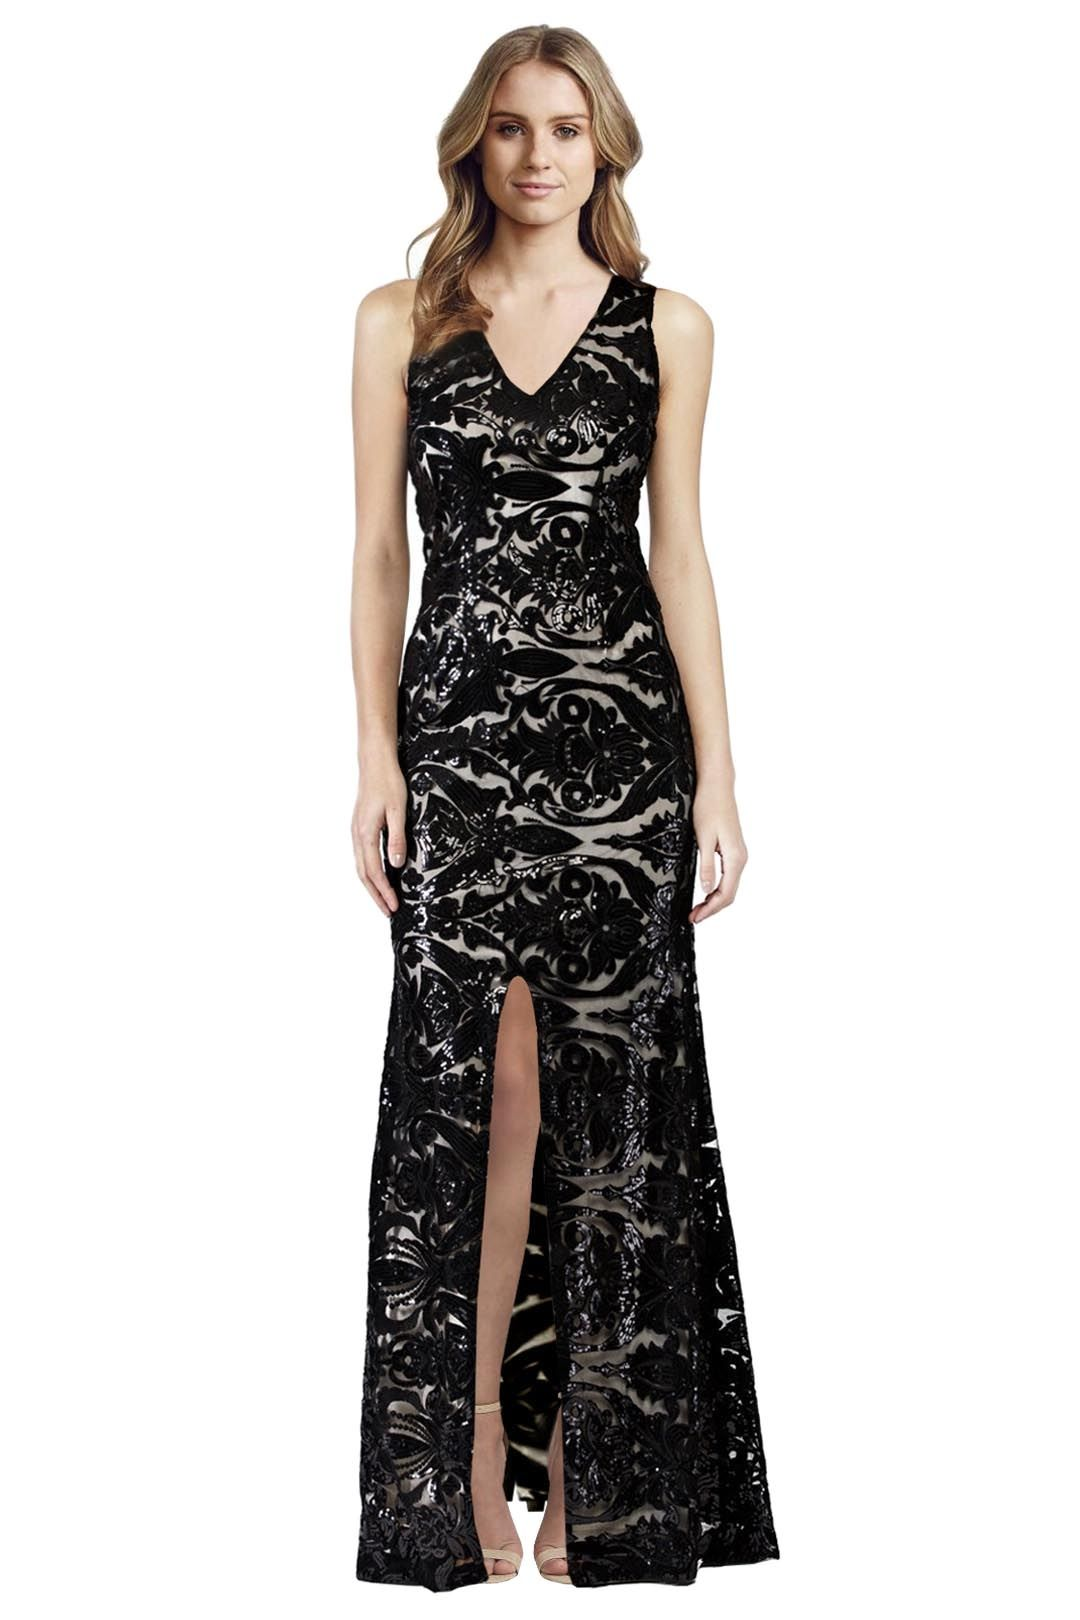 Langhem - Ellie Black and Nude Sequin Evening Dress - Black - Front